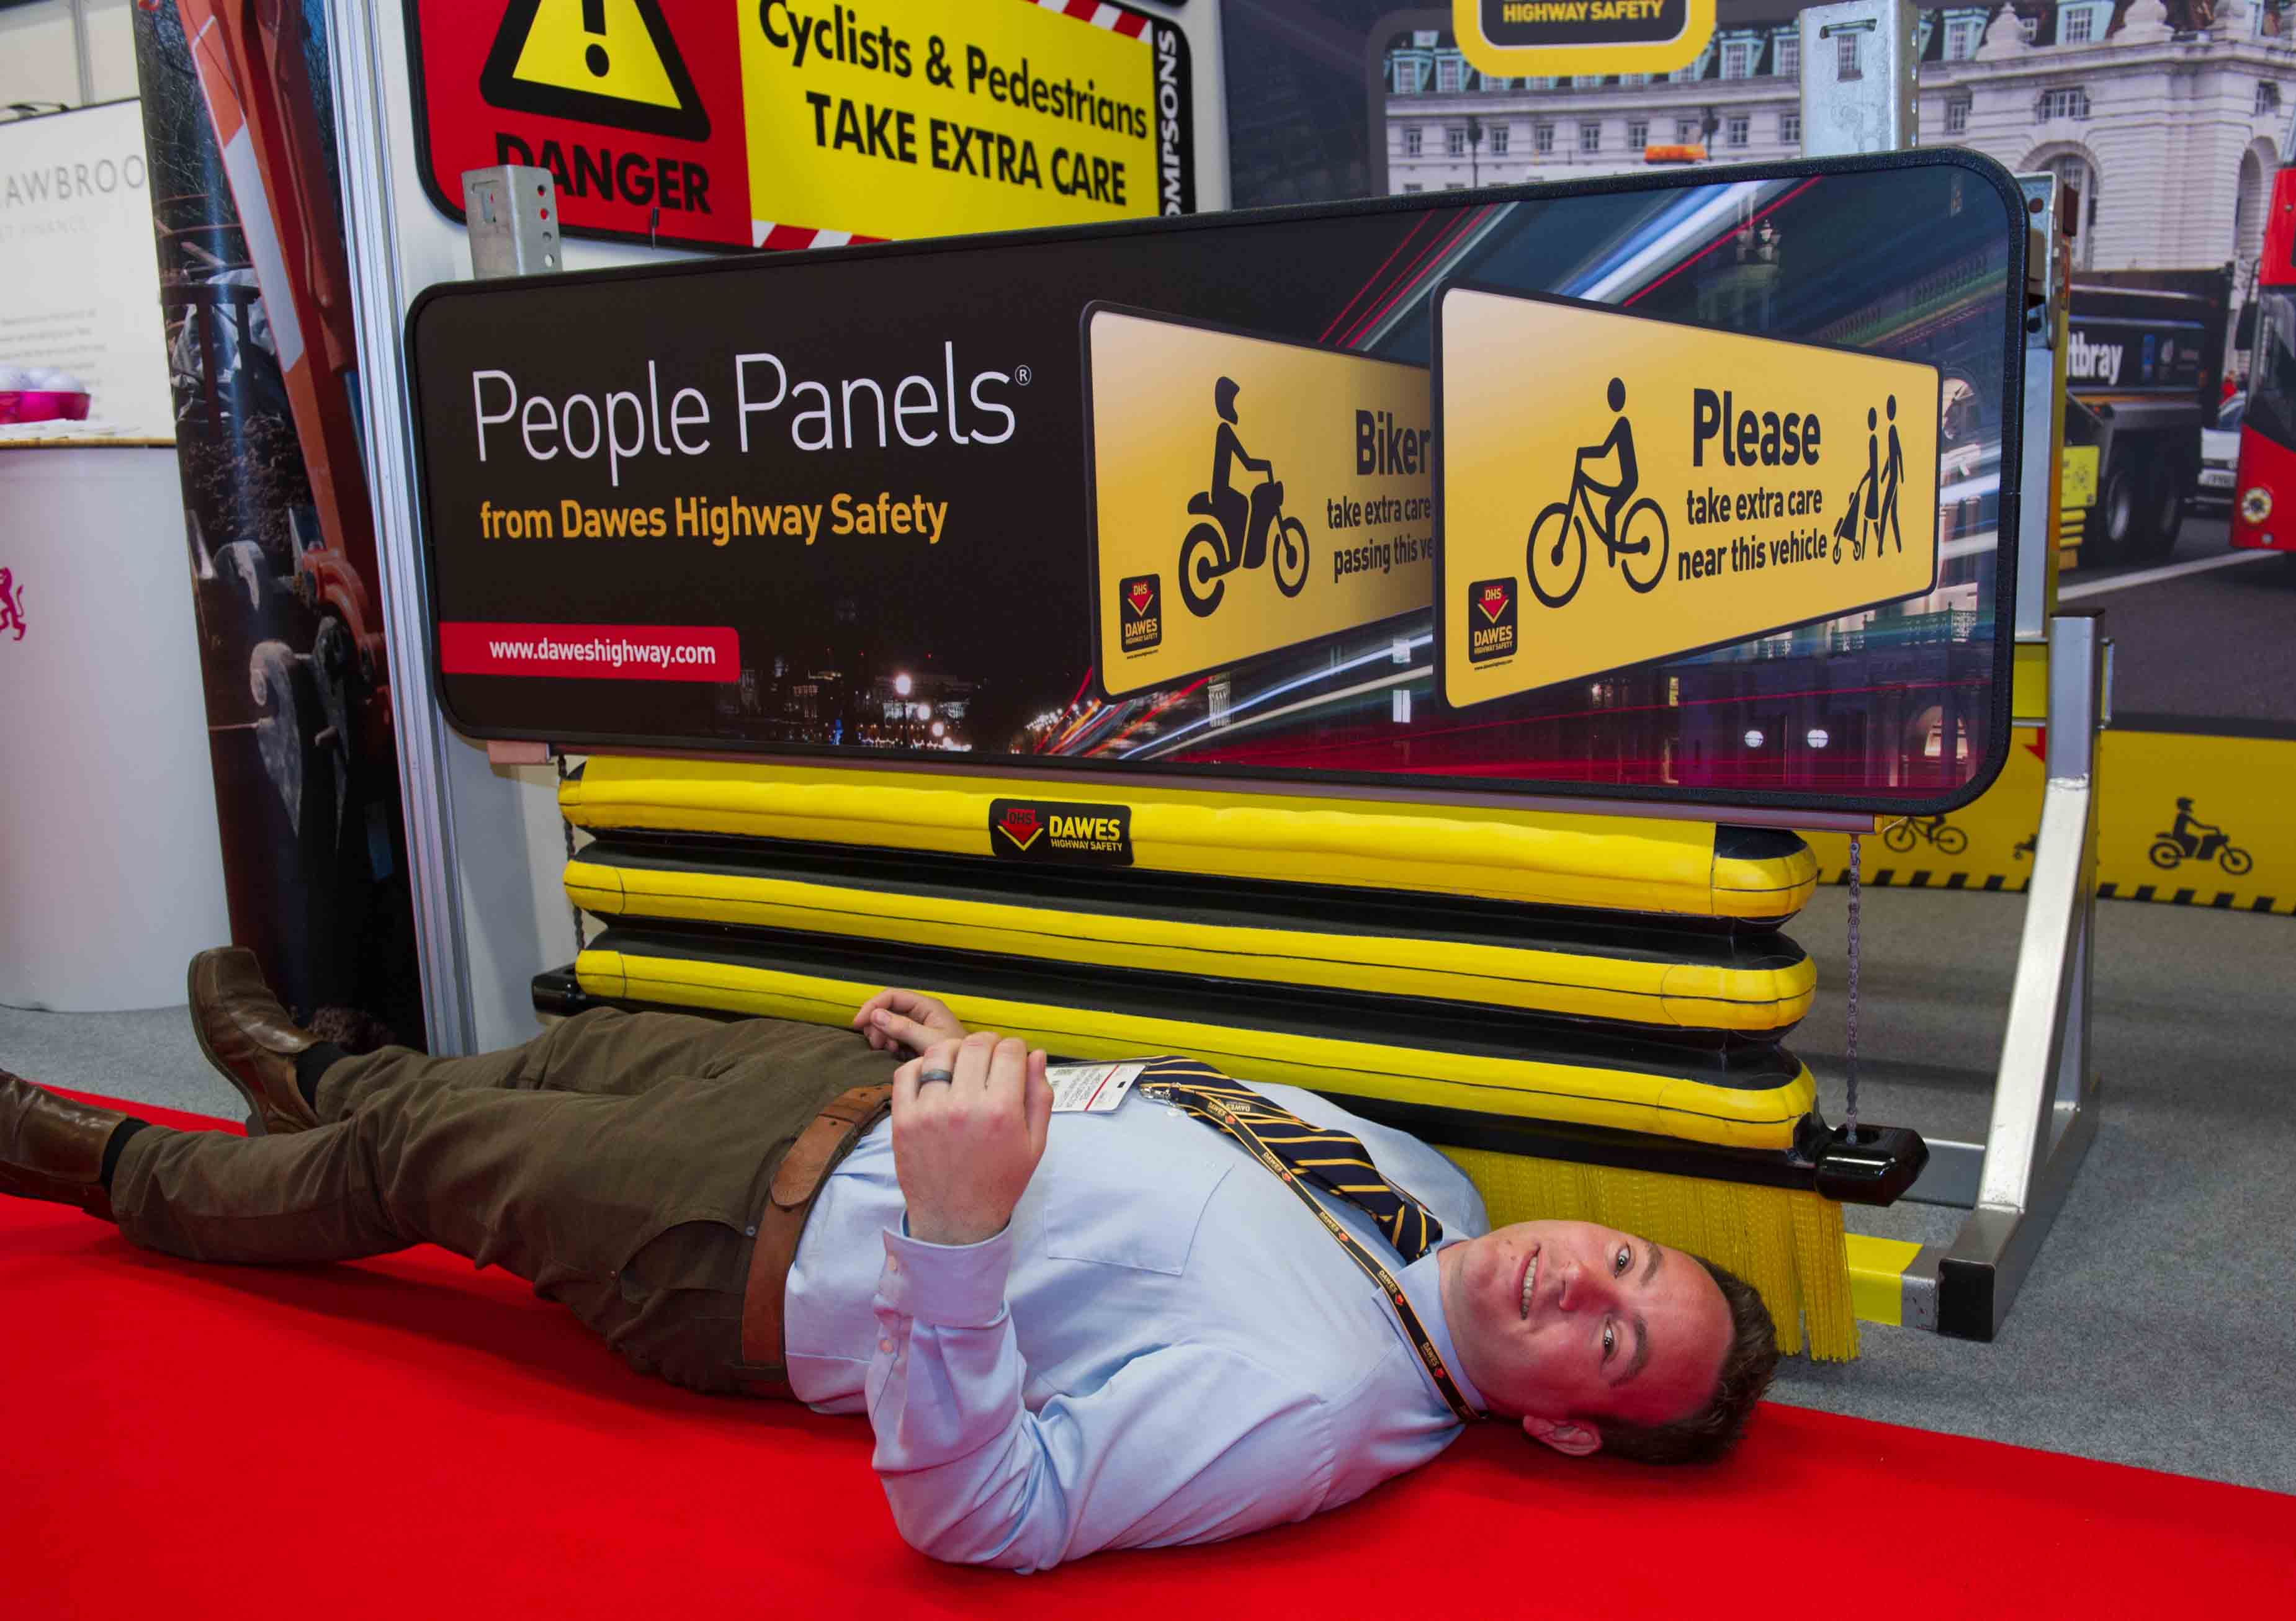 Vehicle safety barrier to help prevent further fatalities